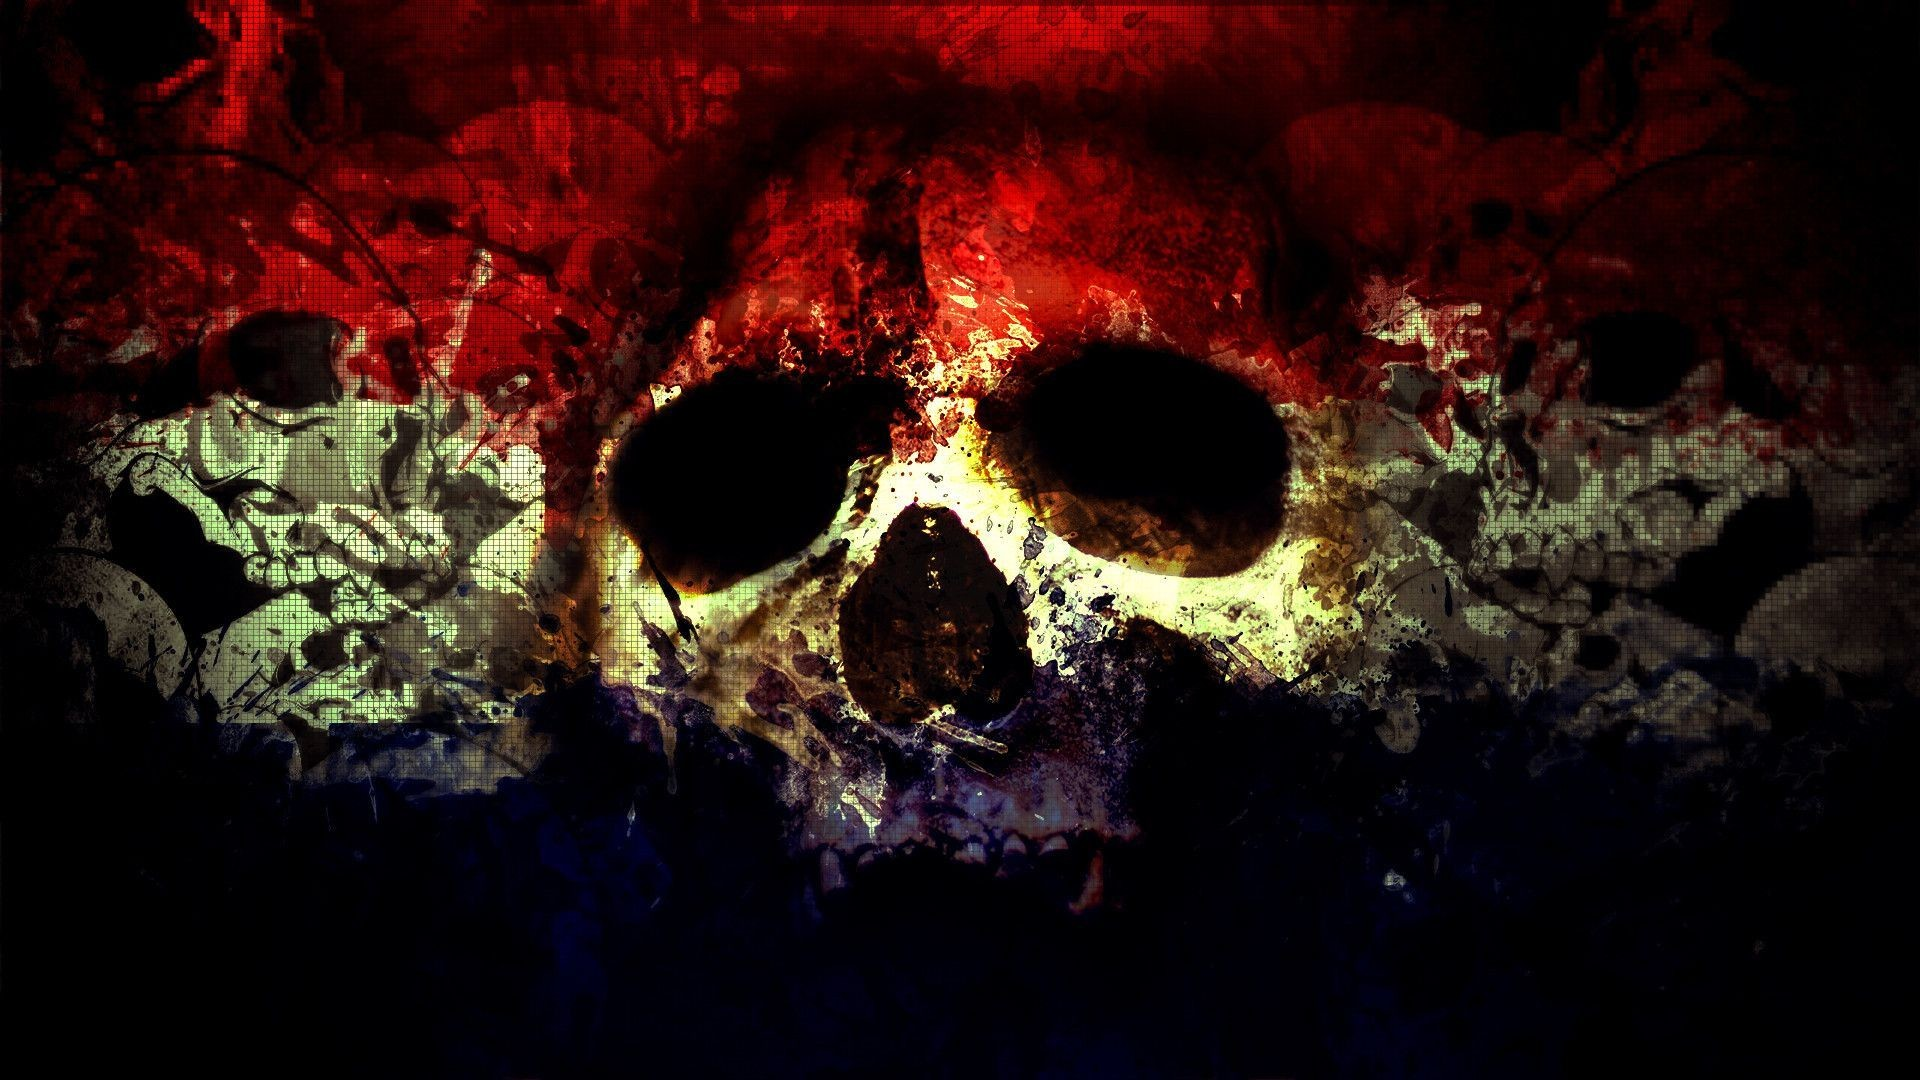 1920x1080 Collection of Skull Wallpaper Hd on HDWallpapers Skull Wallpaper Hd  Wallpapers)